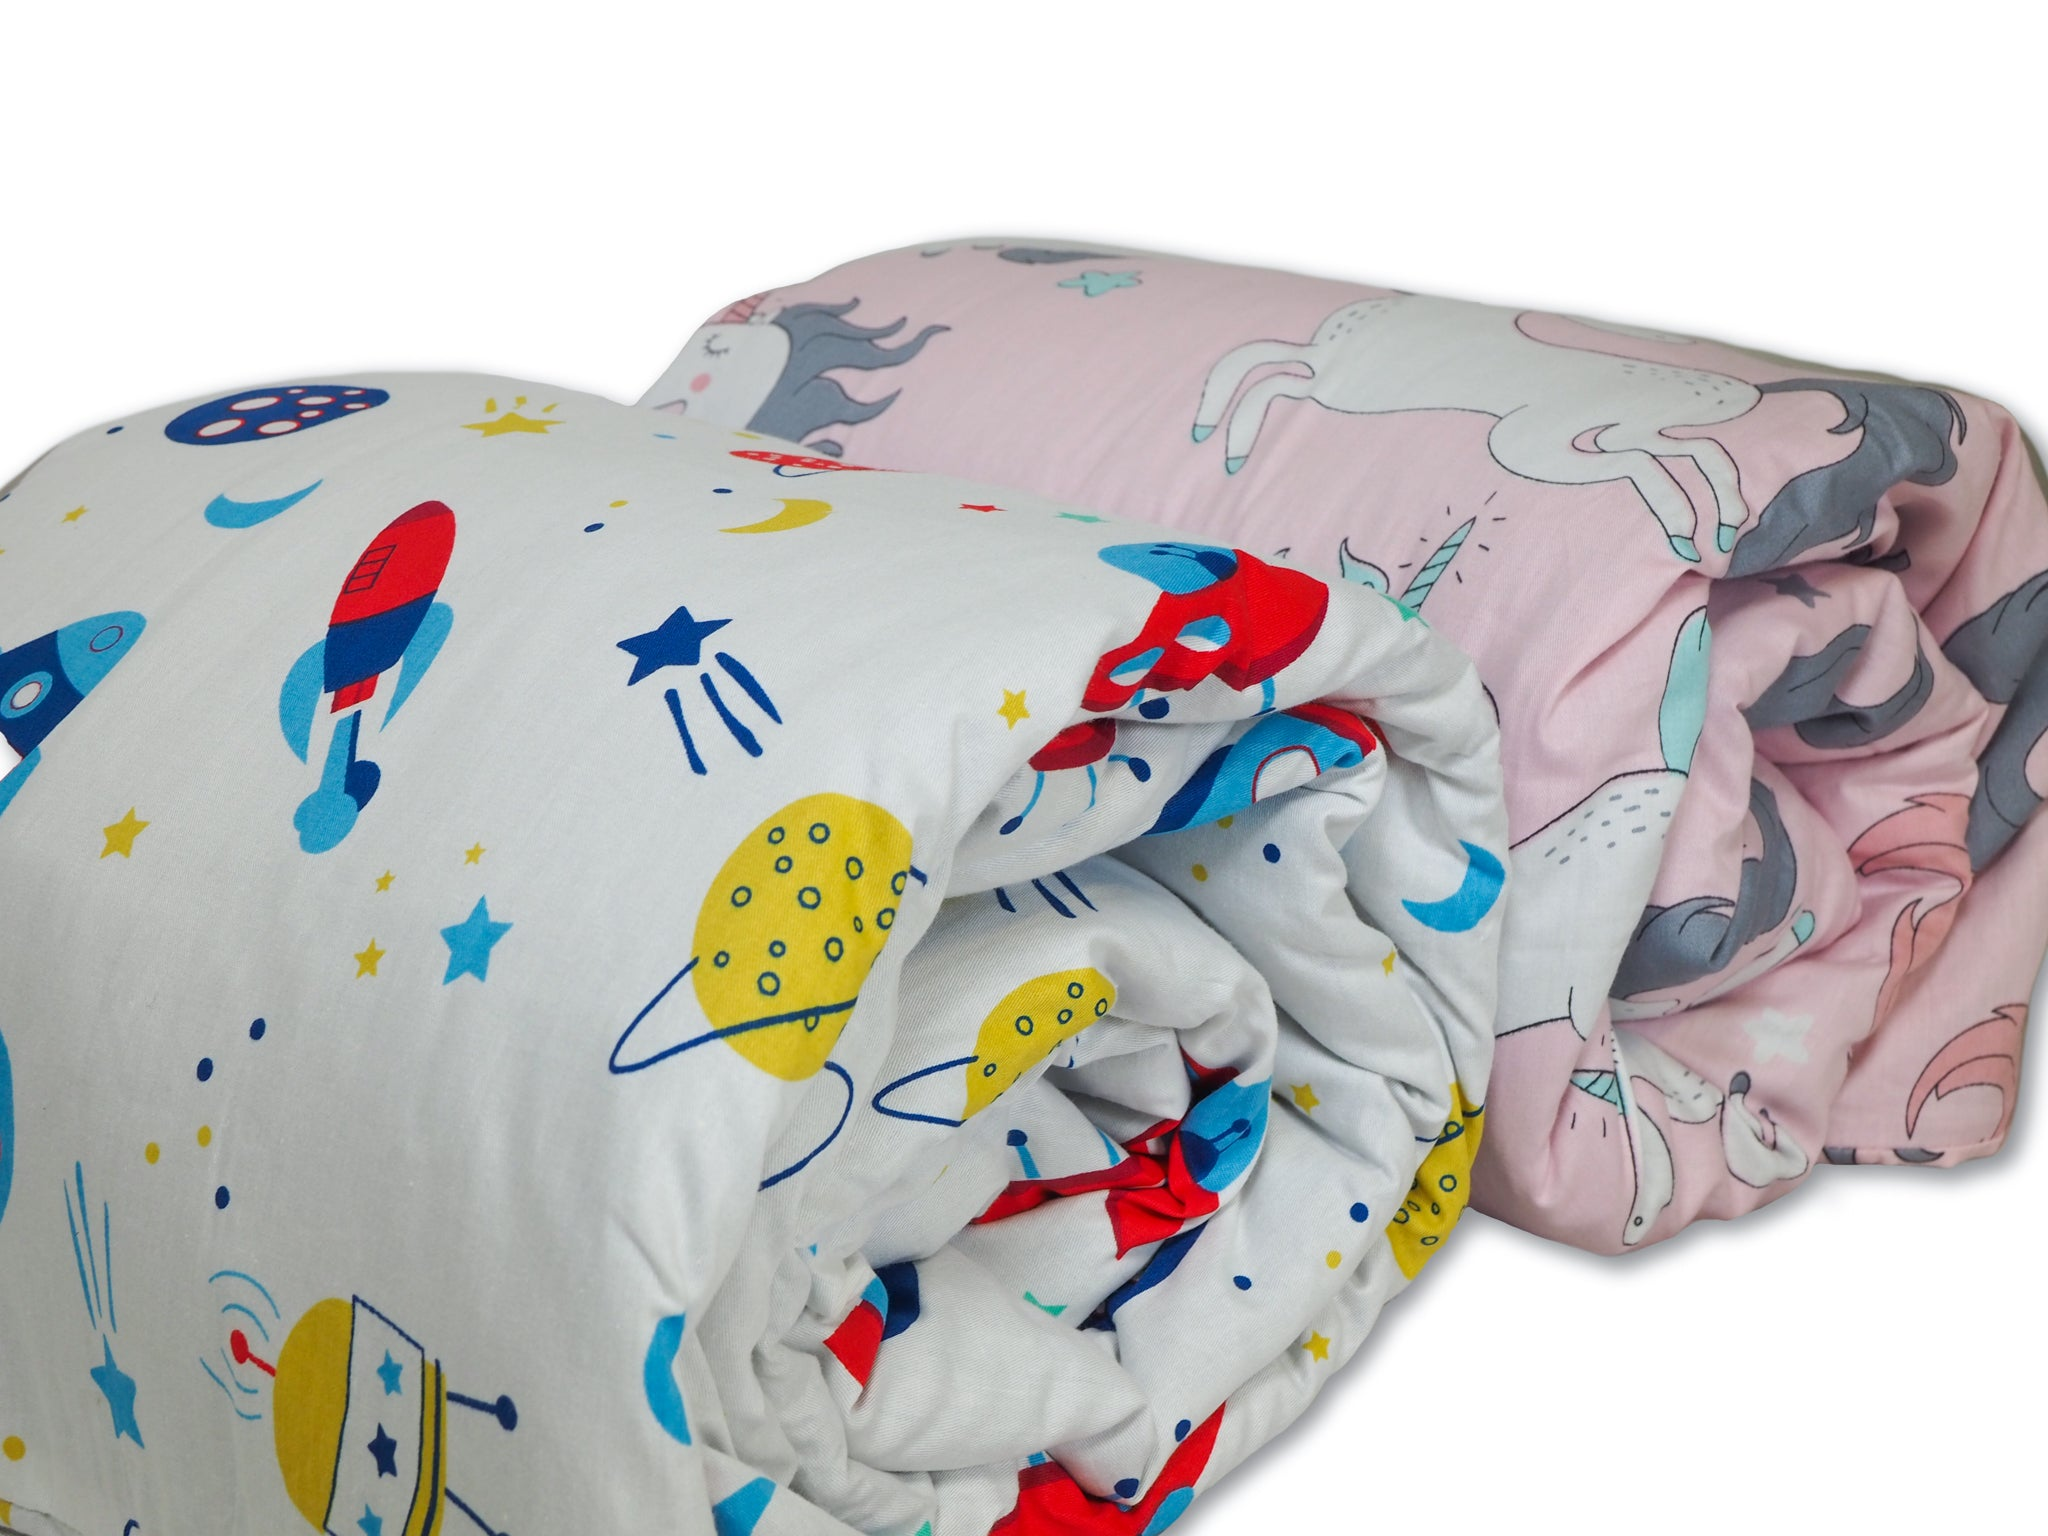 Hush. Kids - Children's Weighted Blanket: Spaceship, Unicorn, Iced 2.0, or Classic Charcoal Grey